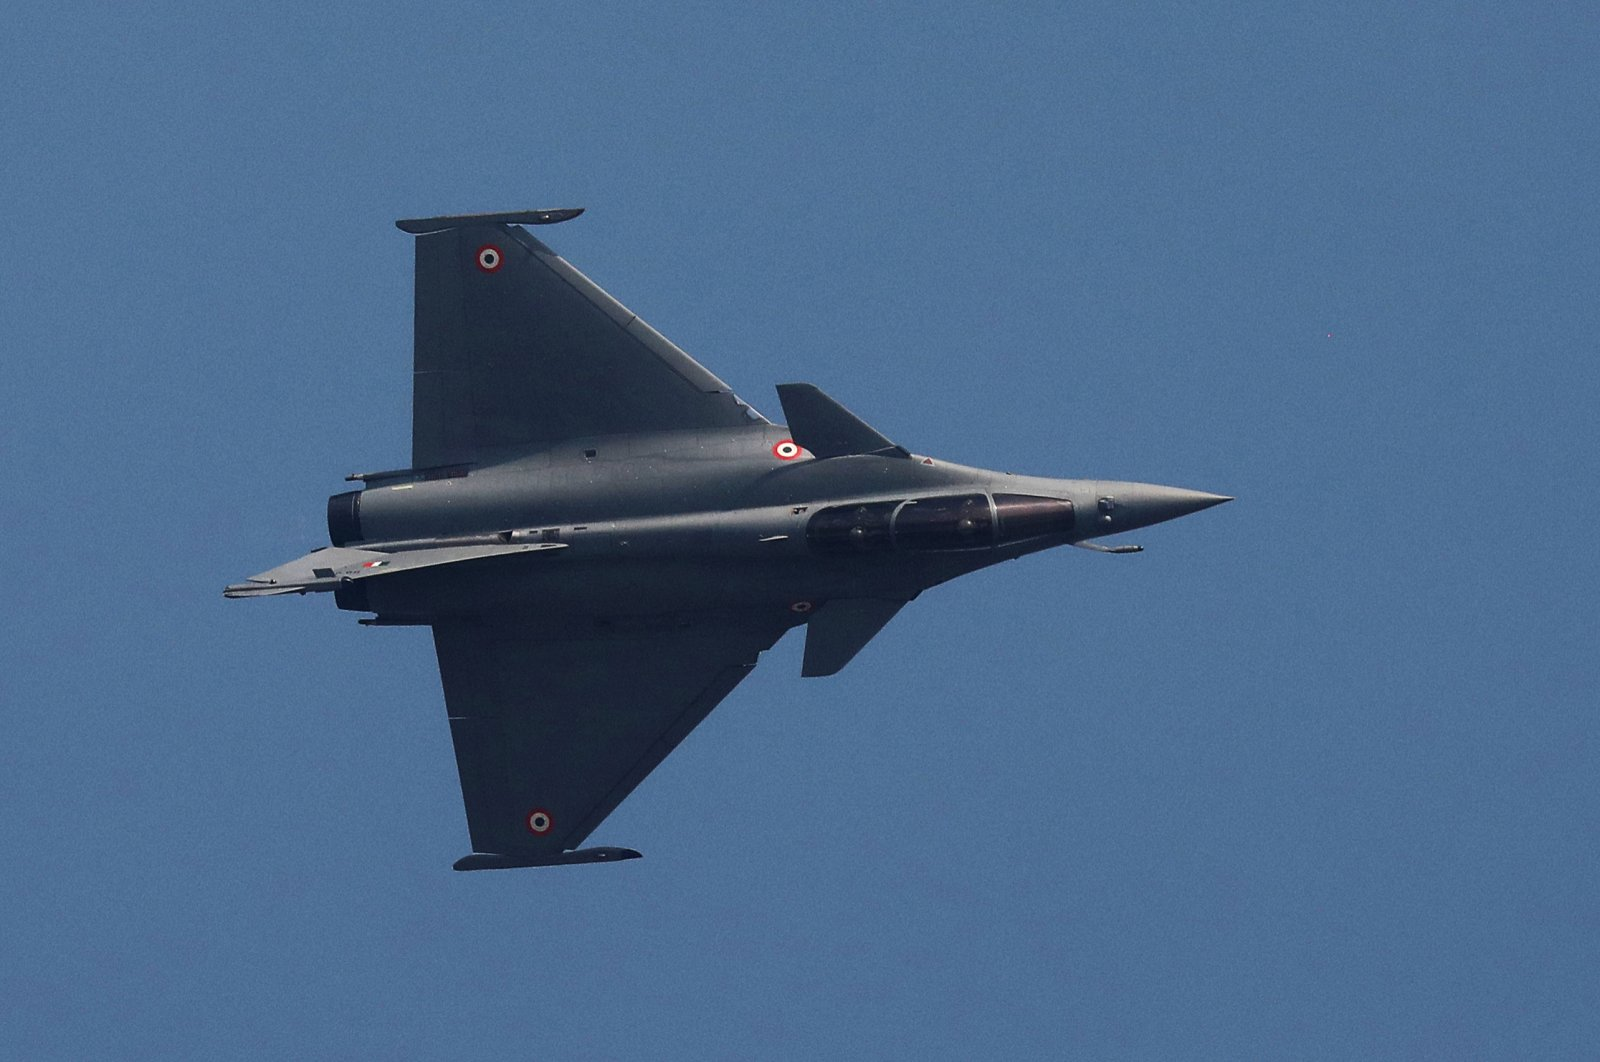 A Rafale fighter jet during an air show at the Hindon Air Force Station on the outskirts of New Delhi, India, Oct. 8, 2020. (EPA-EFE)